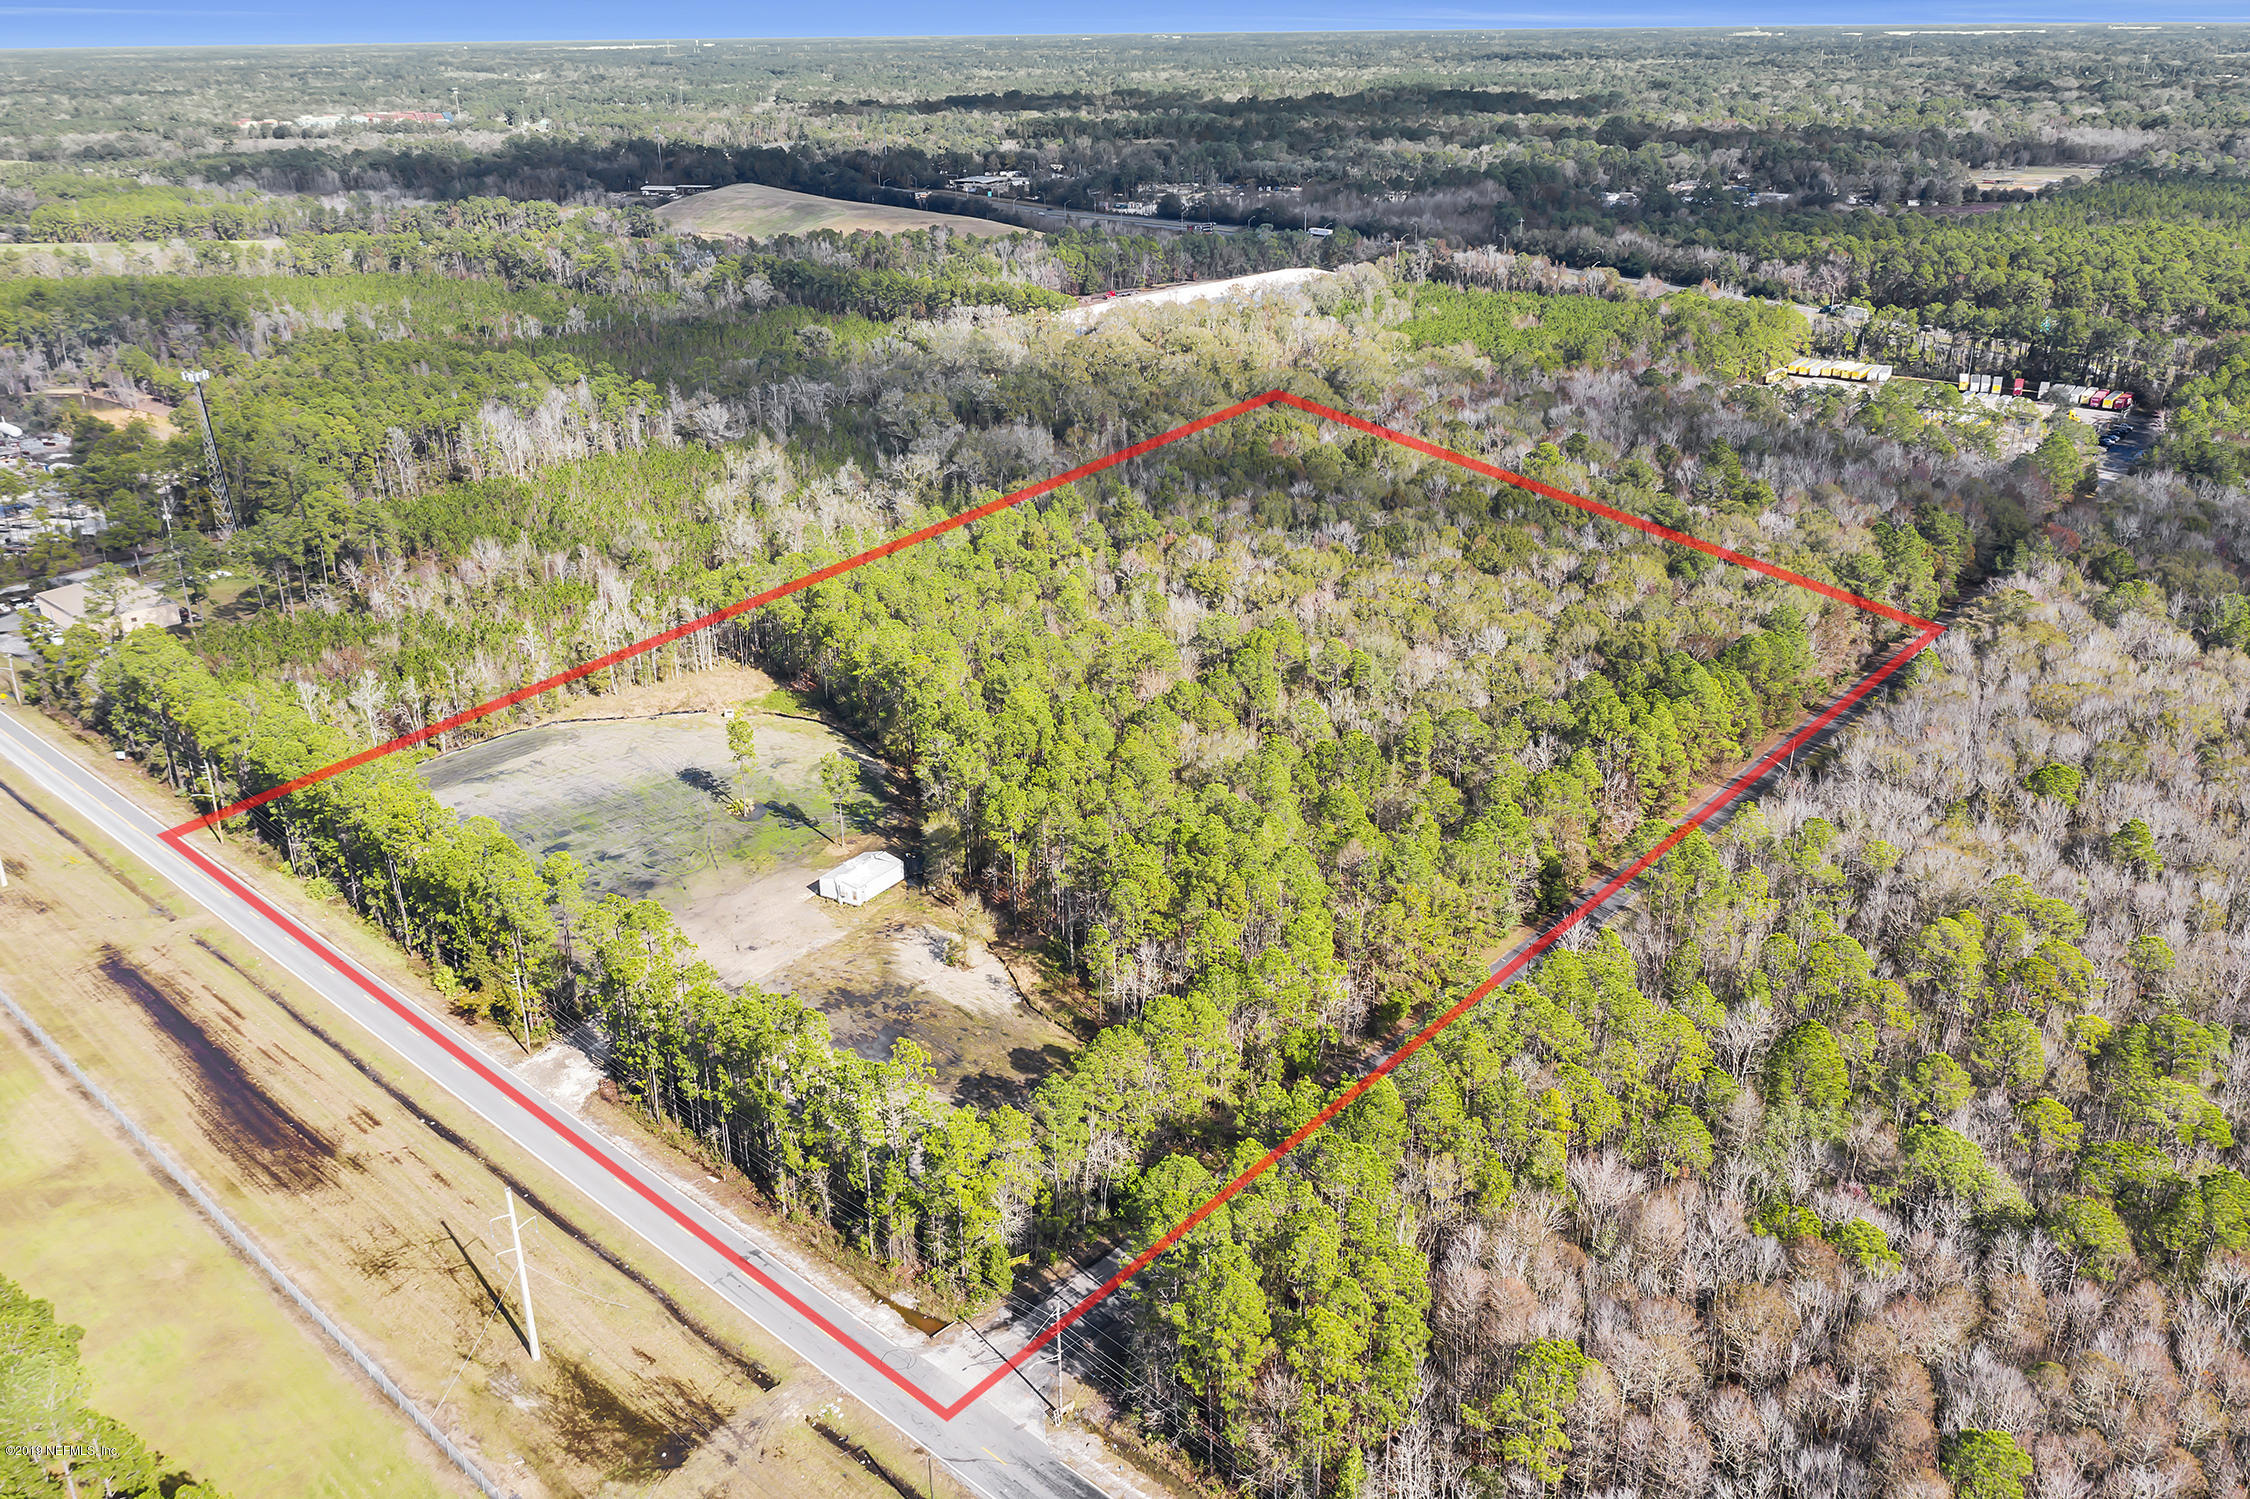 0 SMALLEY, JACKSONVILLE, FLORIDA 32219, ,Commercial,For sale,SMALLEY,1030511